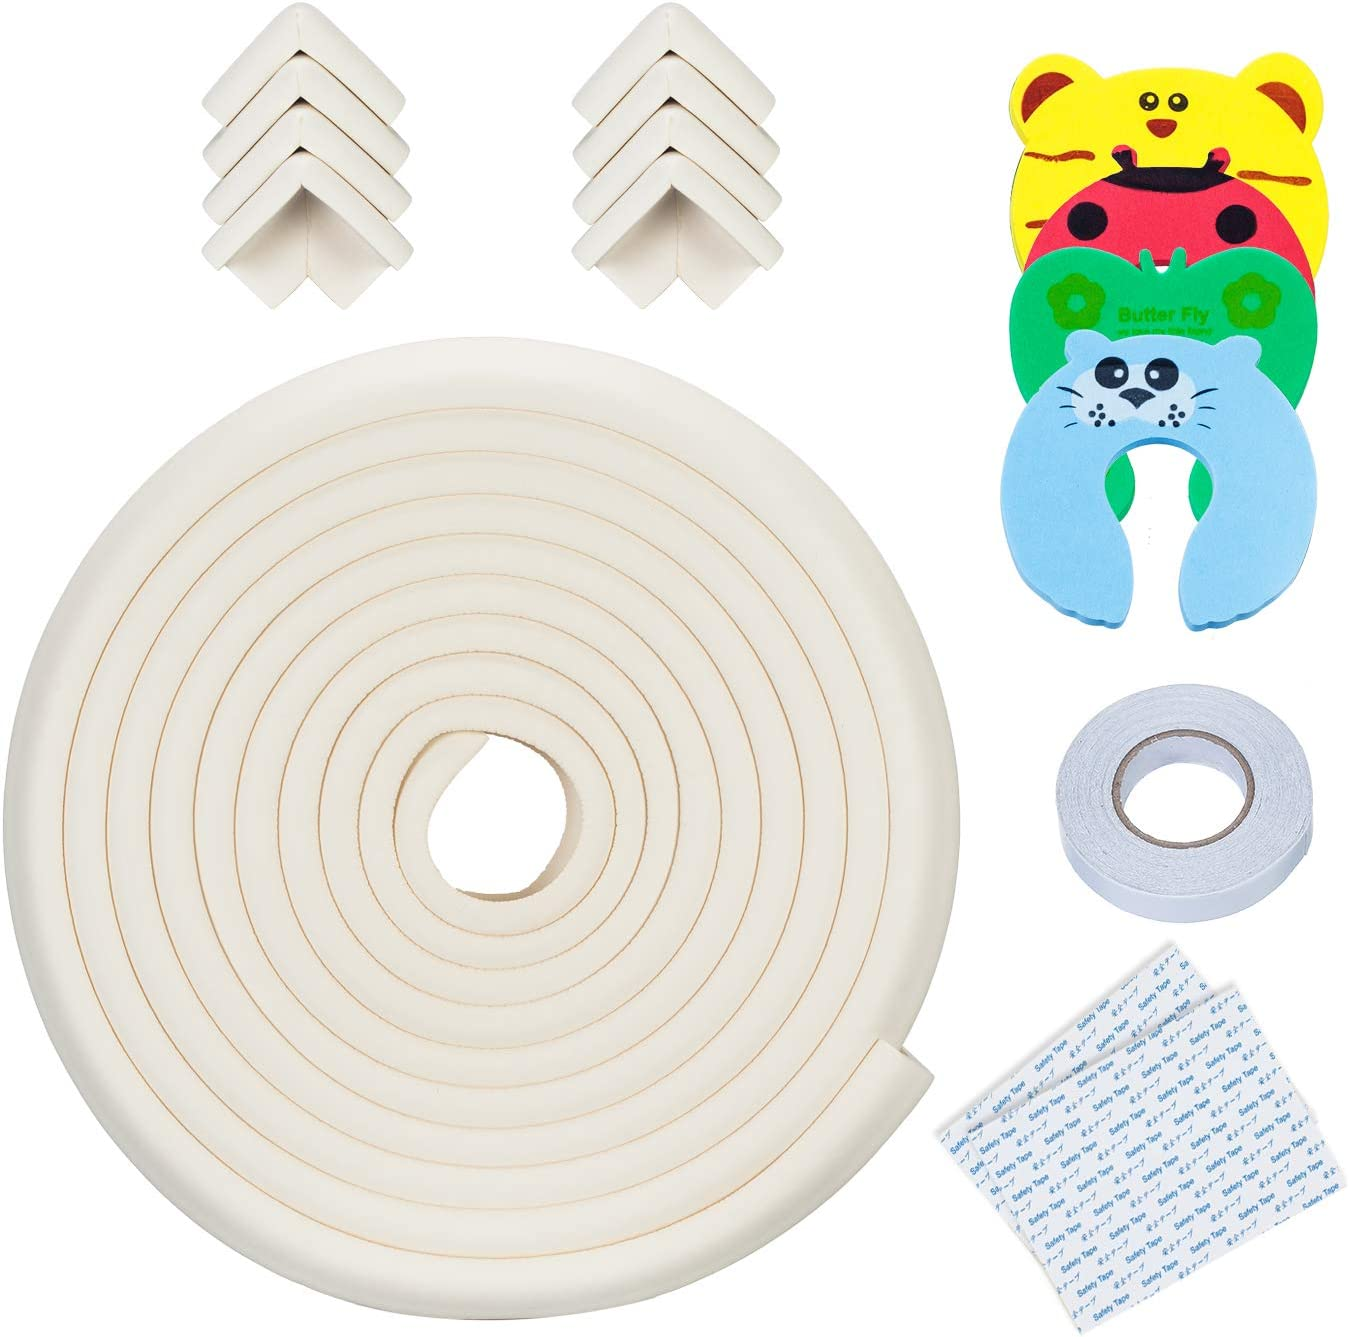 20.4ft Edge + 8 Corners + 4 Door Pinch Guard Oyster Baby Proofing Edge and Corner Guards 13 Piece Furniture Safety Set